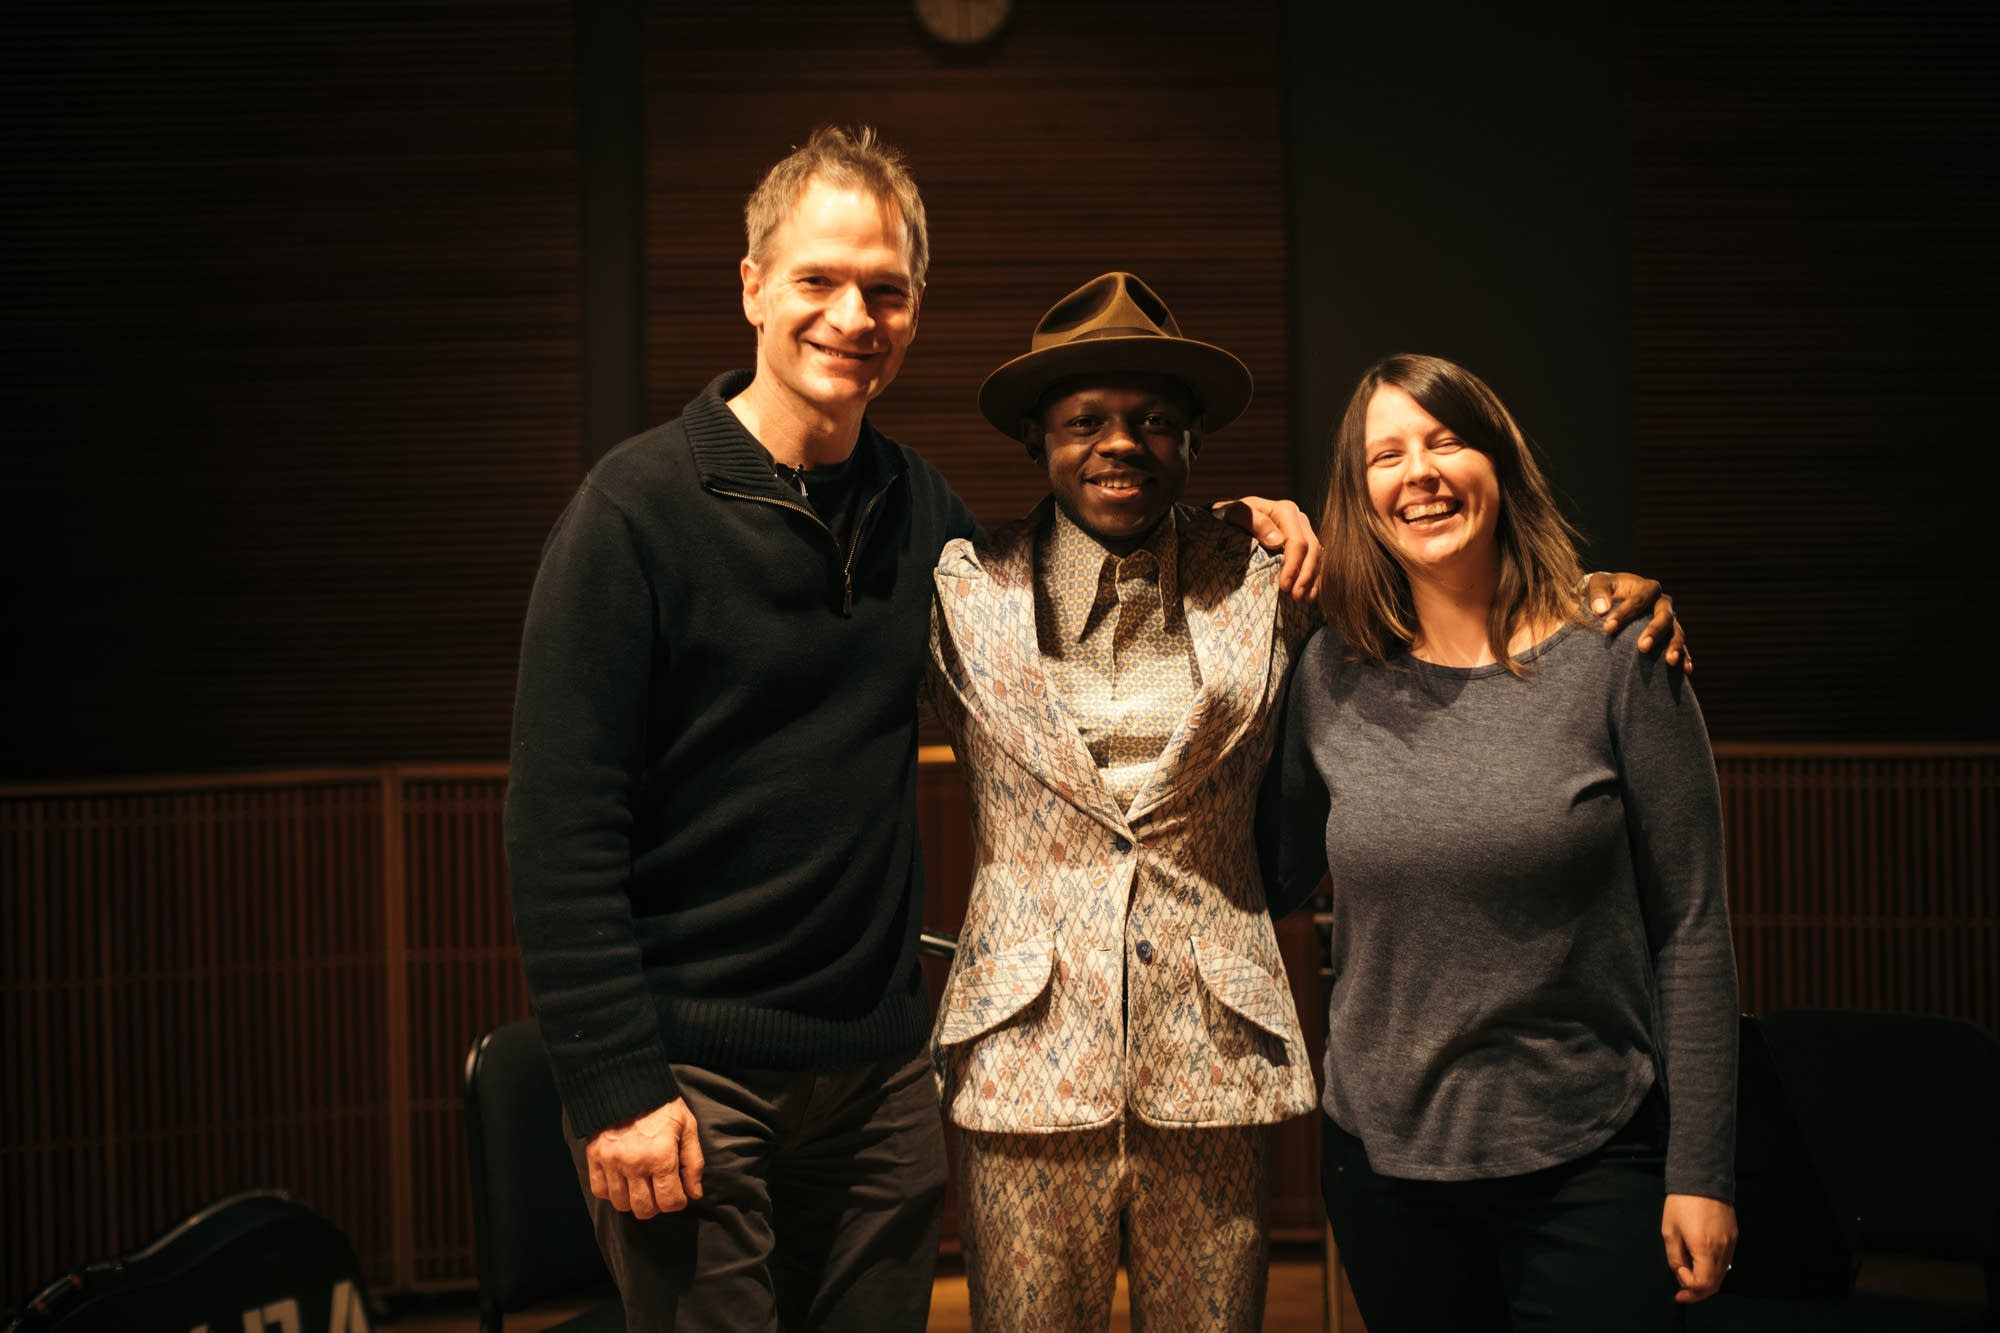 J.S. Ondara with Jim McGuinn and Andrea Swensson